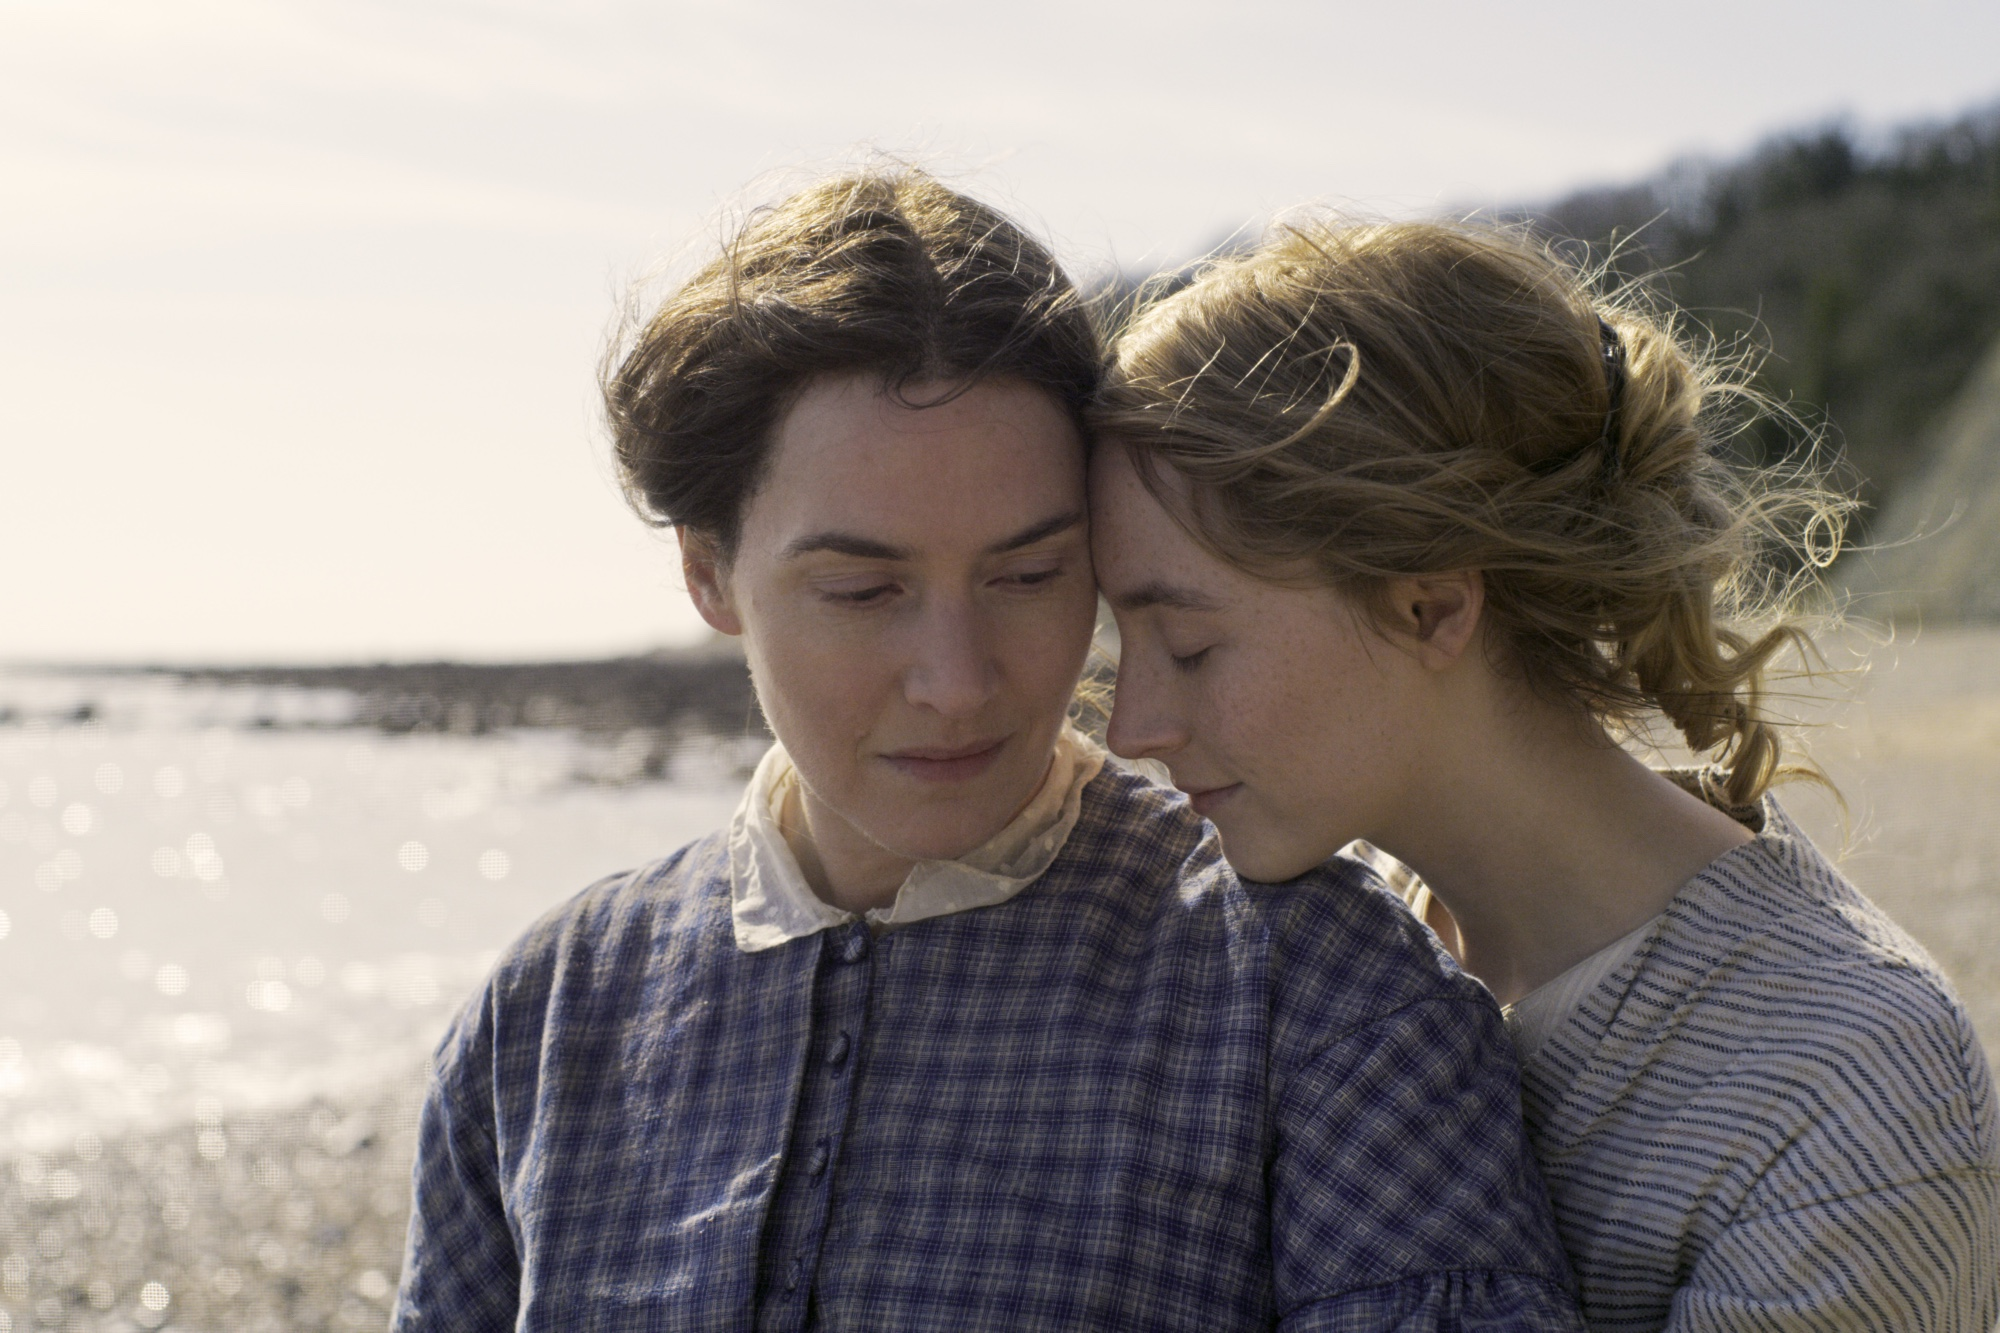 Movies to watch during Pride: Ammonite